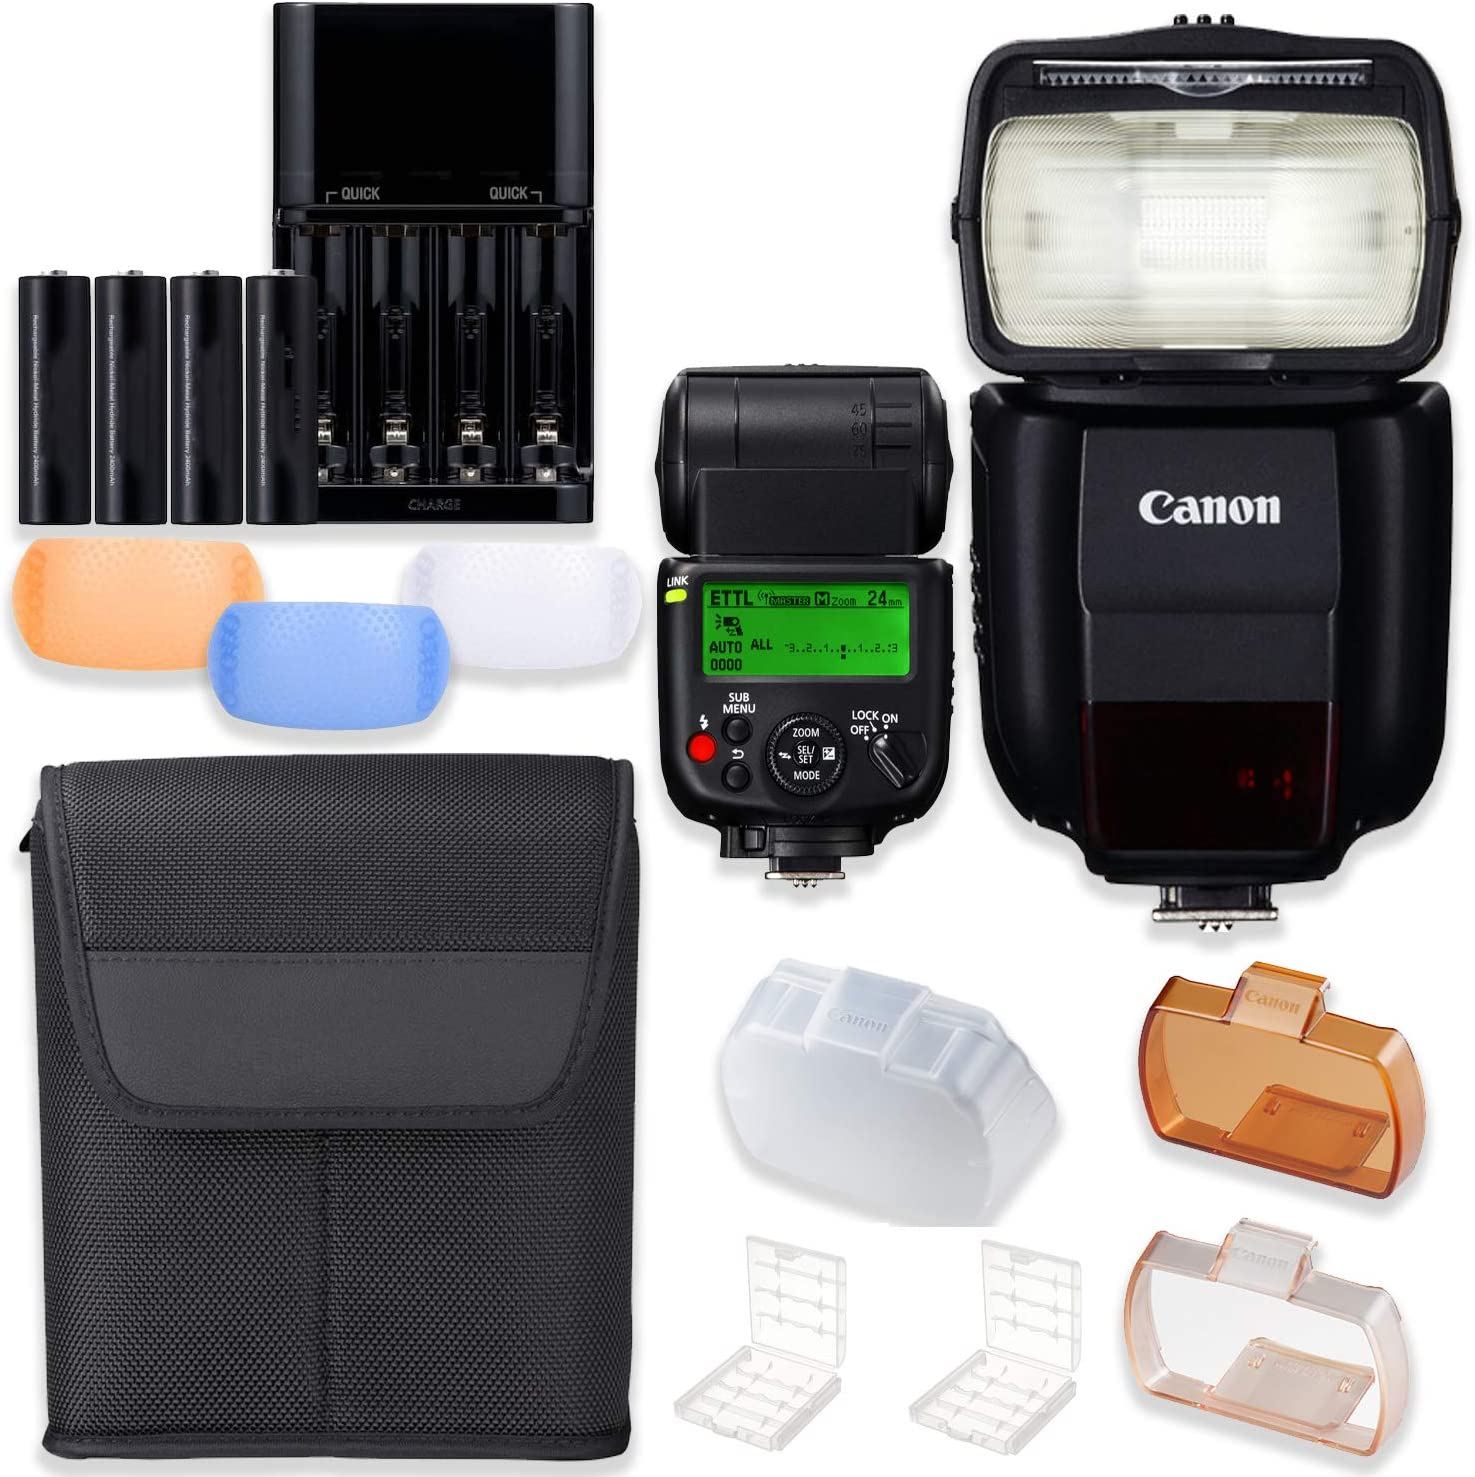 Colored Flash Diffusers 4 AA Batteries with Charger Canon Speedlite 430EX III-RT High Speed Camera Flash with Radio Flash Capabilities Speedlite Case